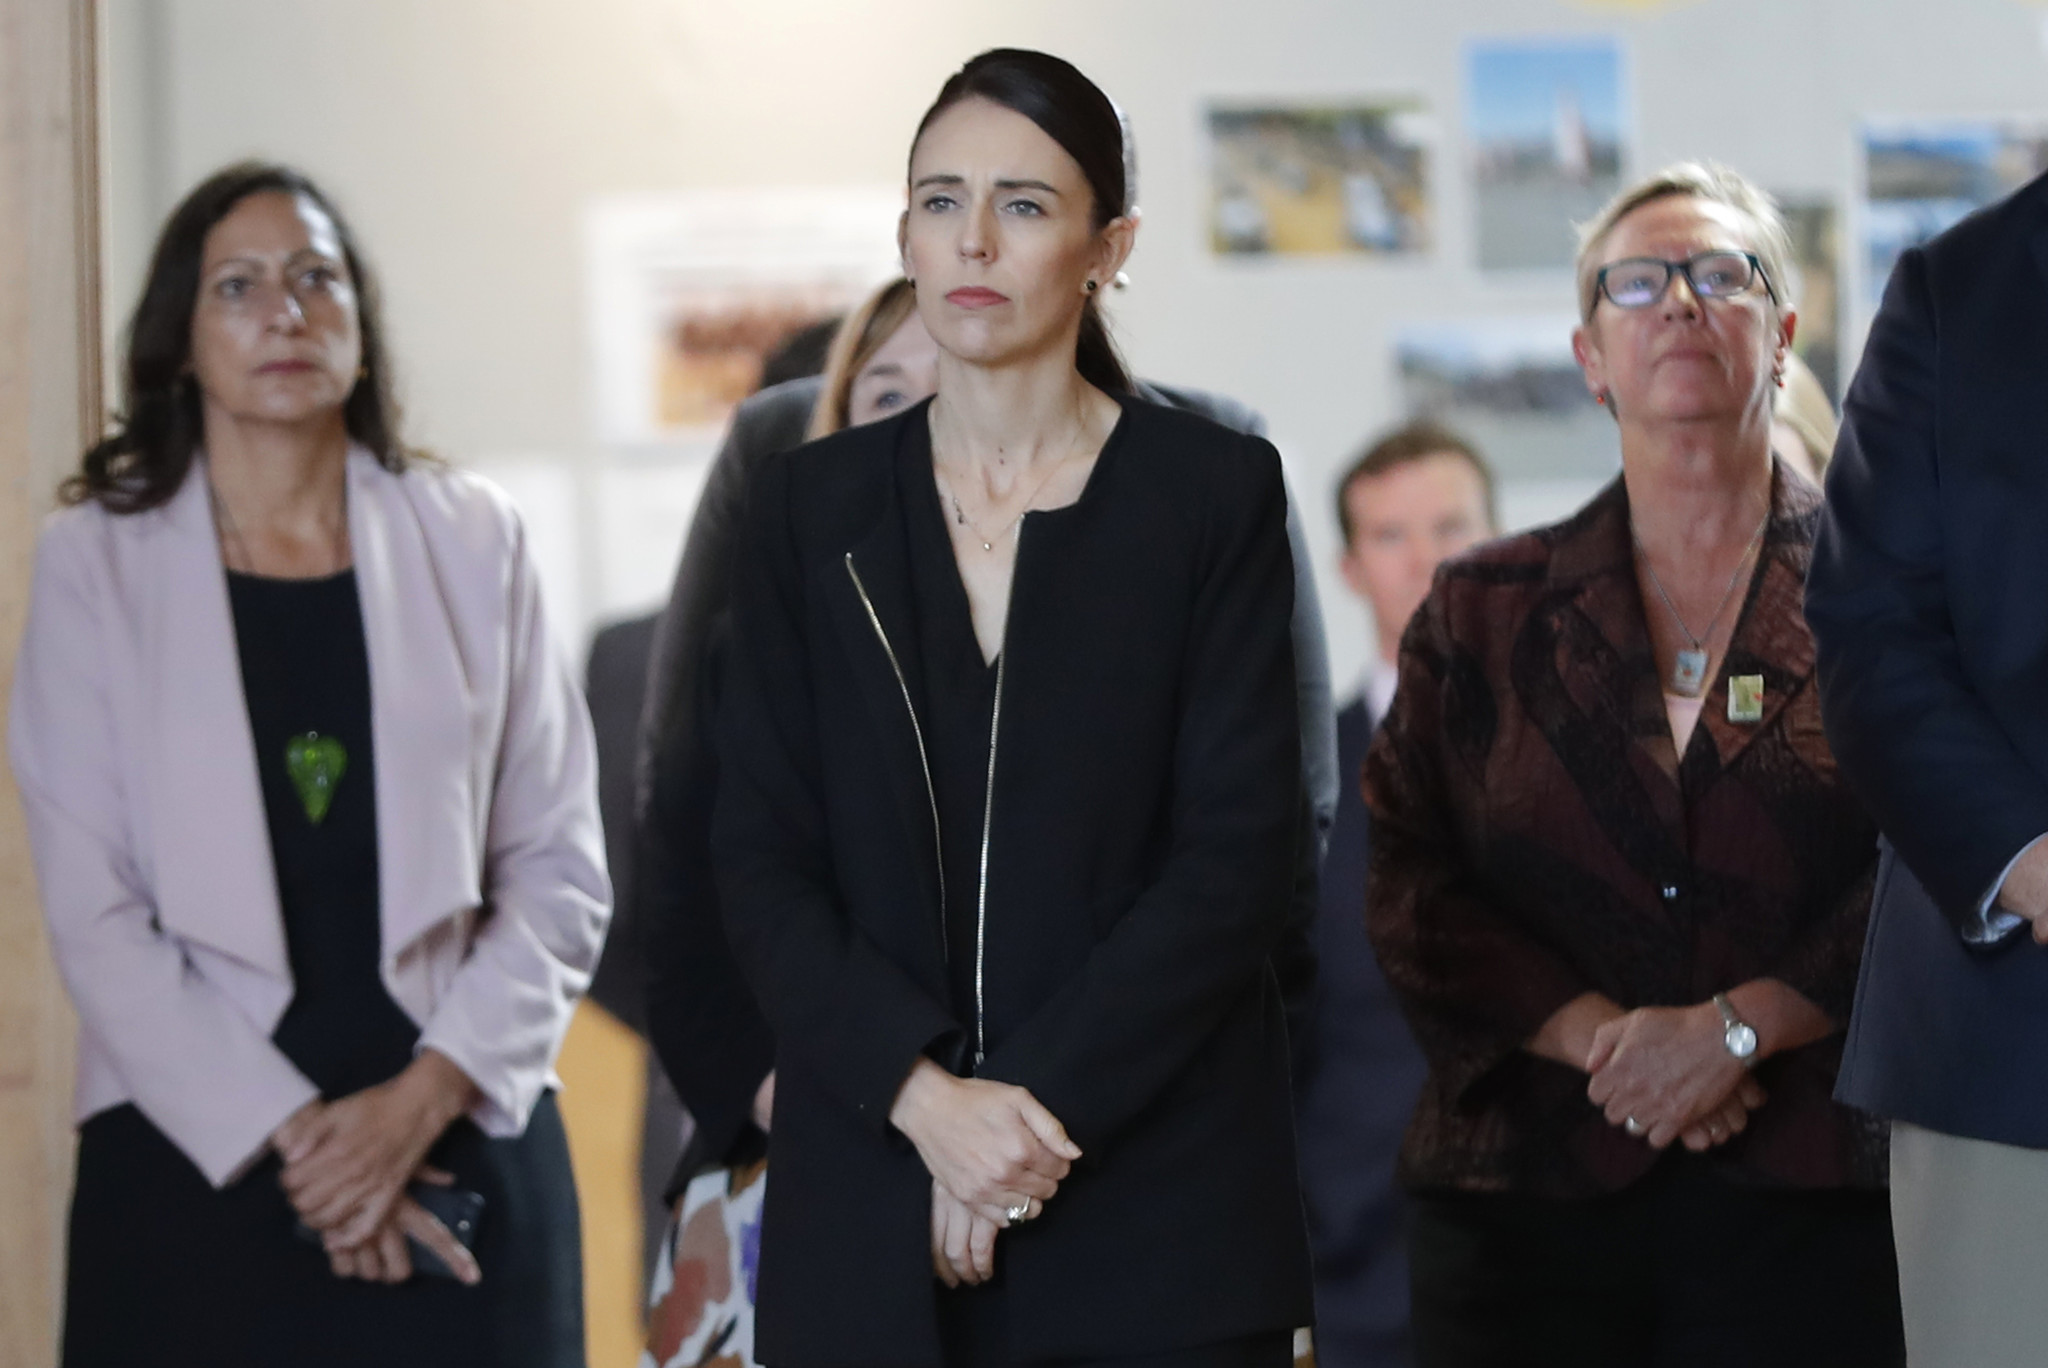 'You will never hear me mention his name': New Zealand's prime minister vows to deny accused mass shooter notoriety